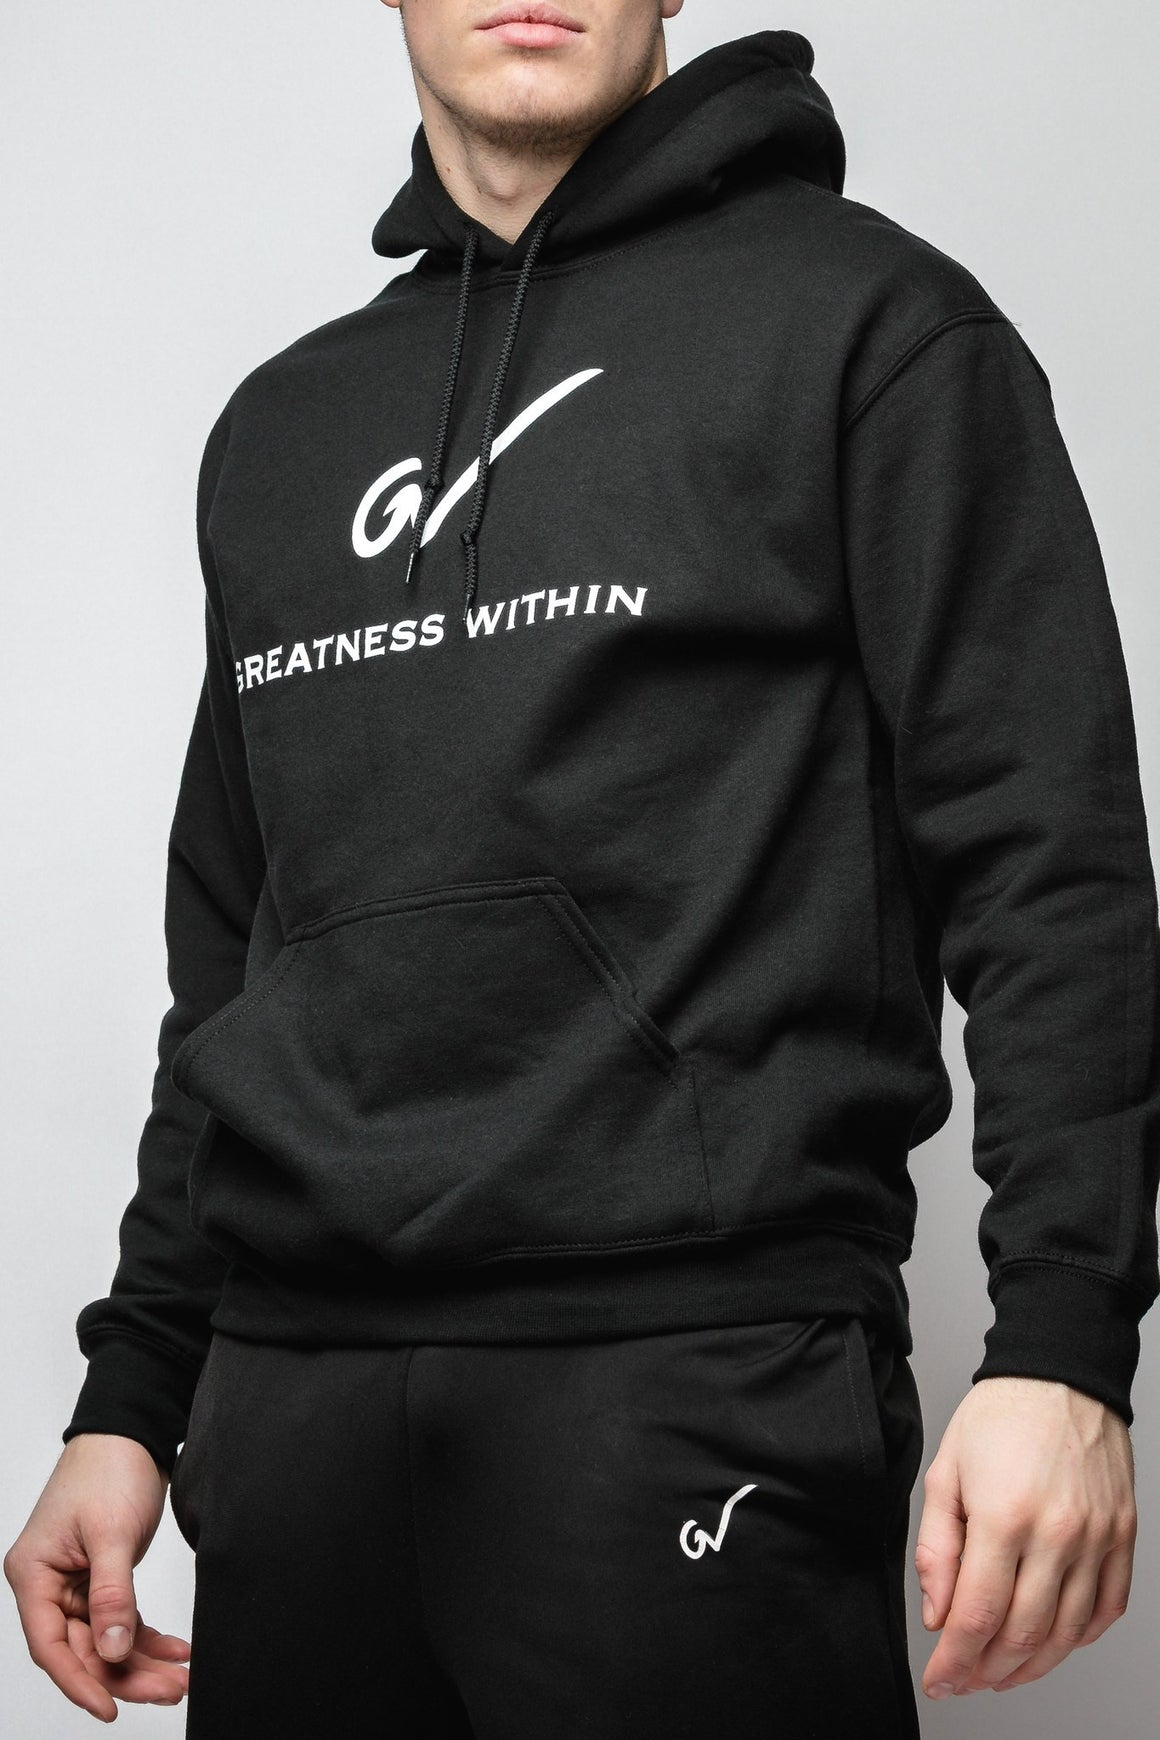 GW Black Hoodie - Greatness Within